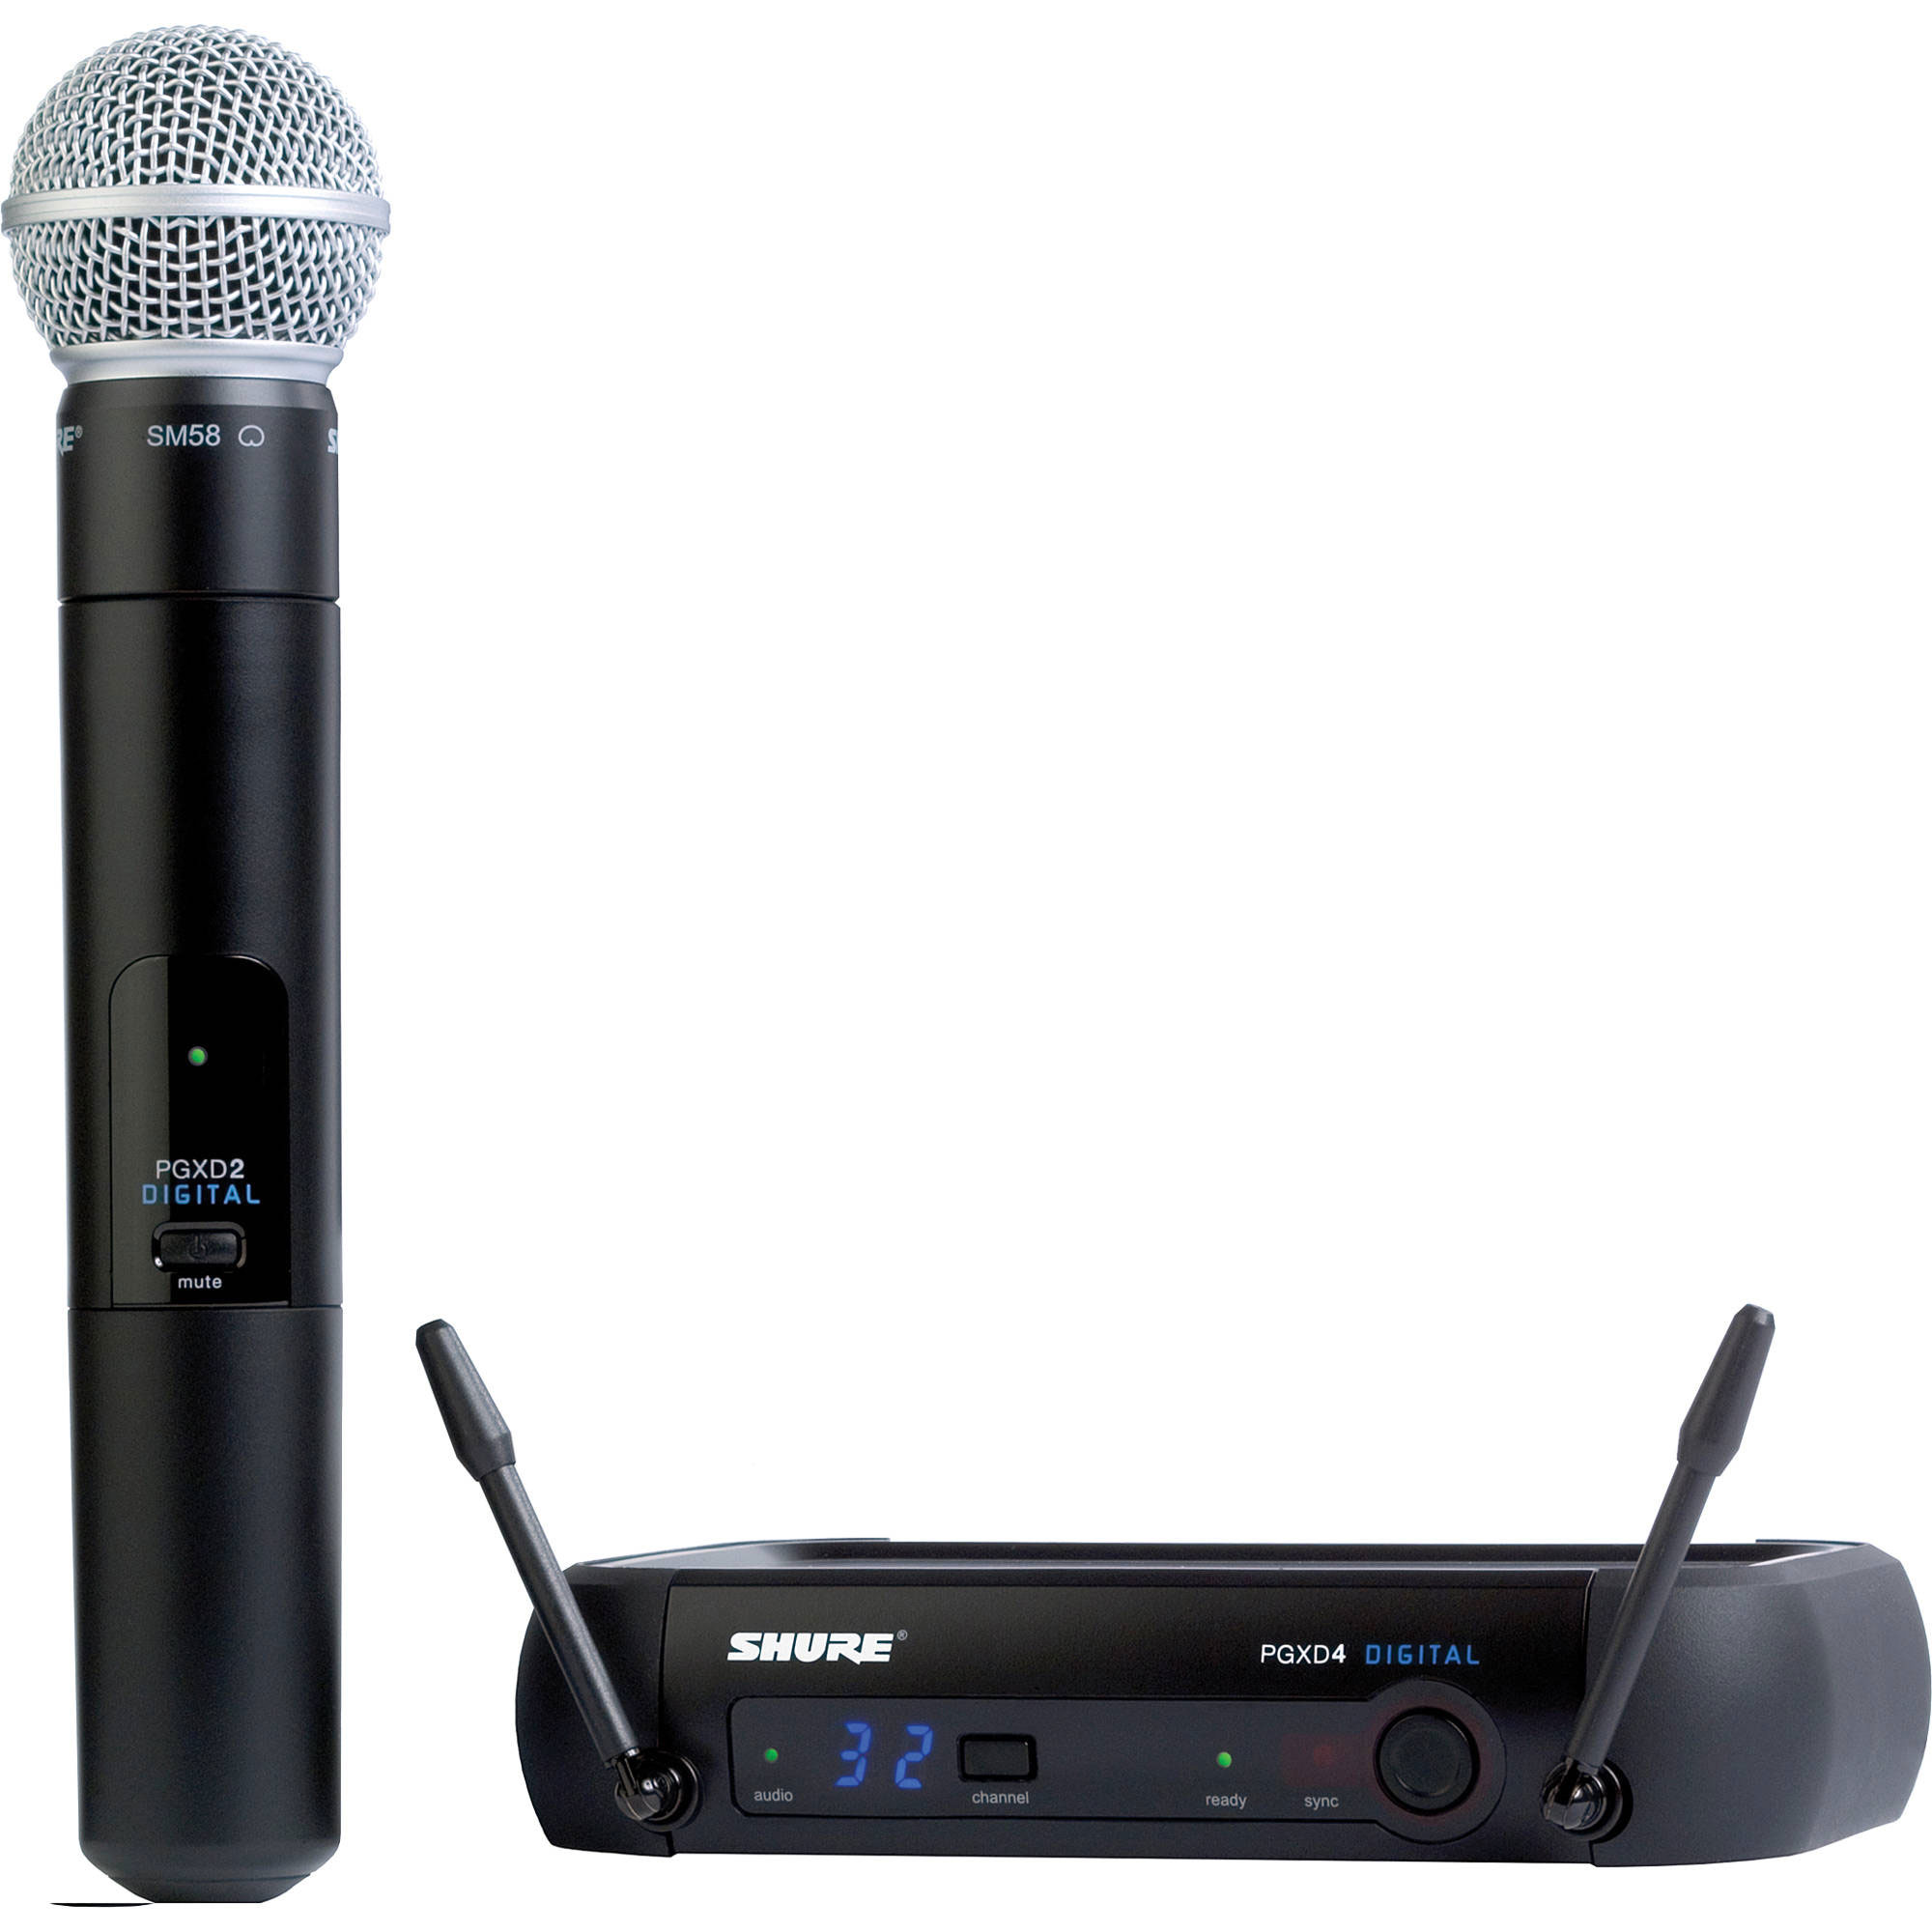 Shure PGXD24/SM58 Handheld Digital Wireless Microphone System